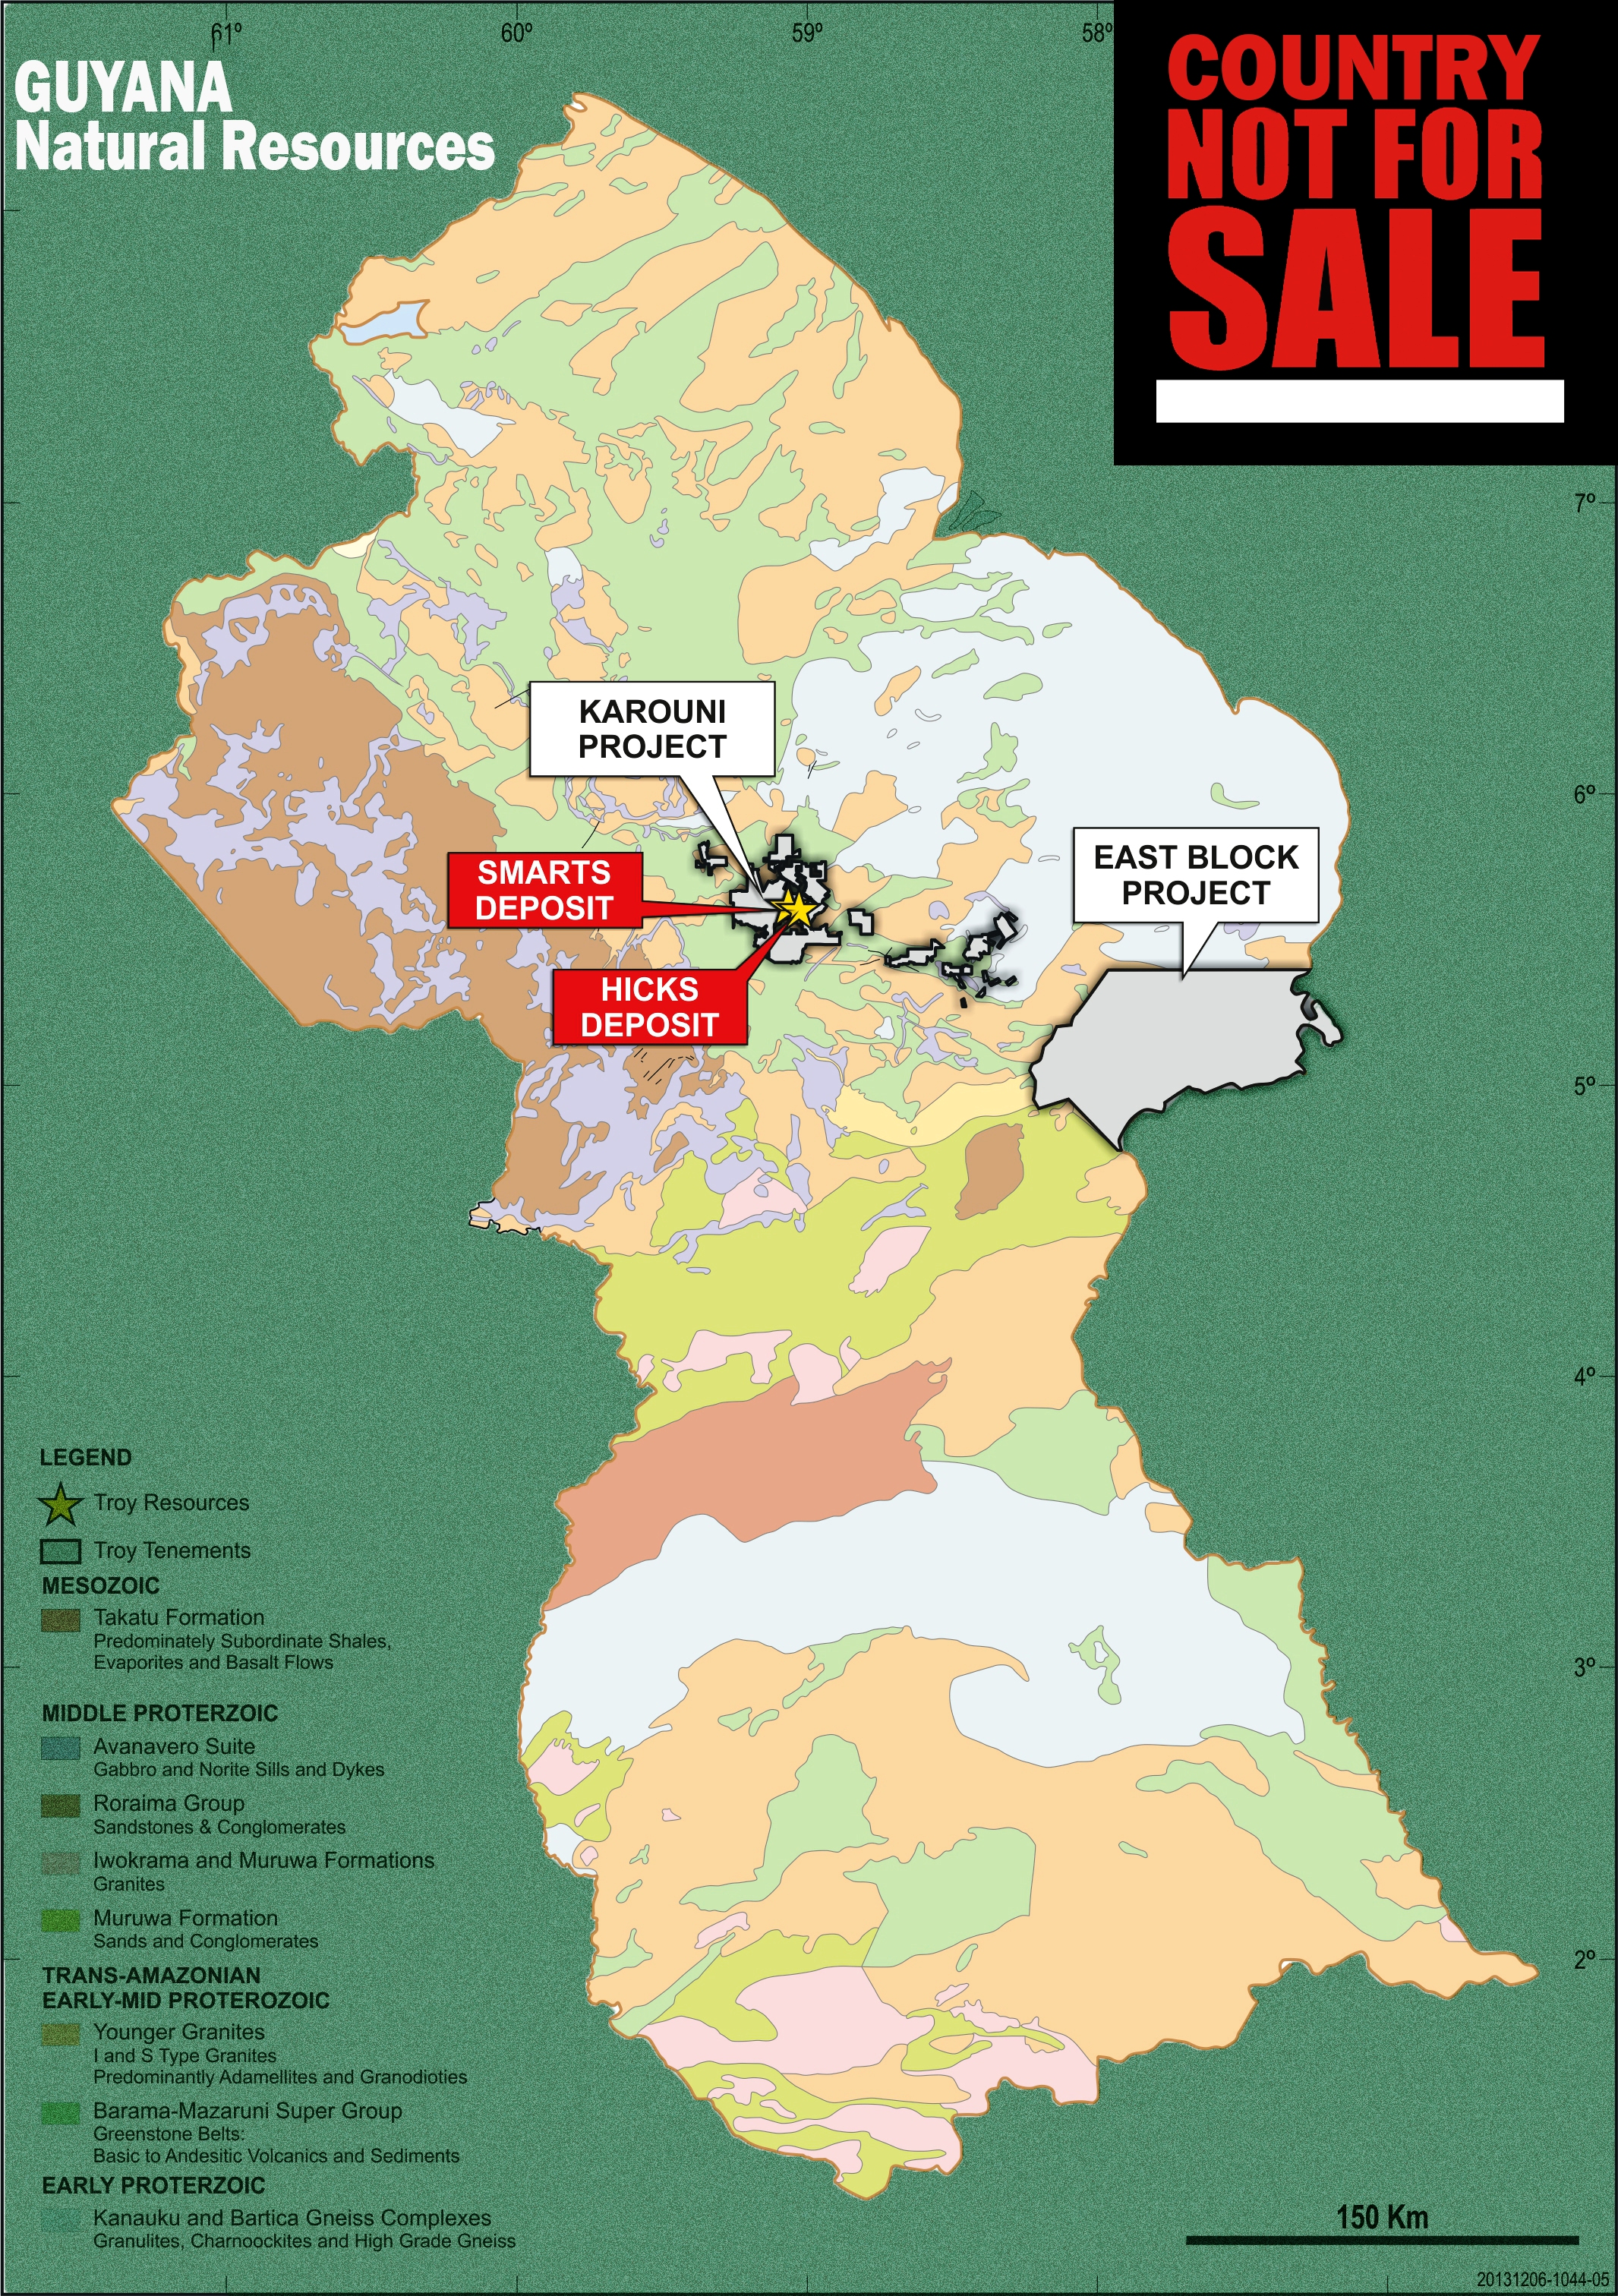 guyana, mineral resources, not for sale